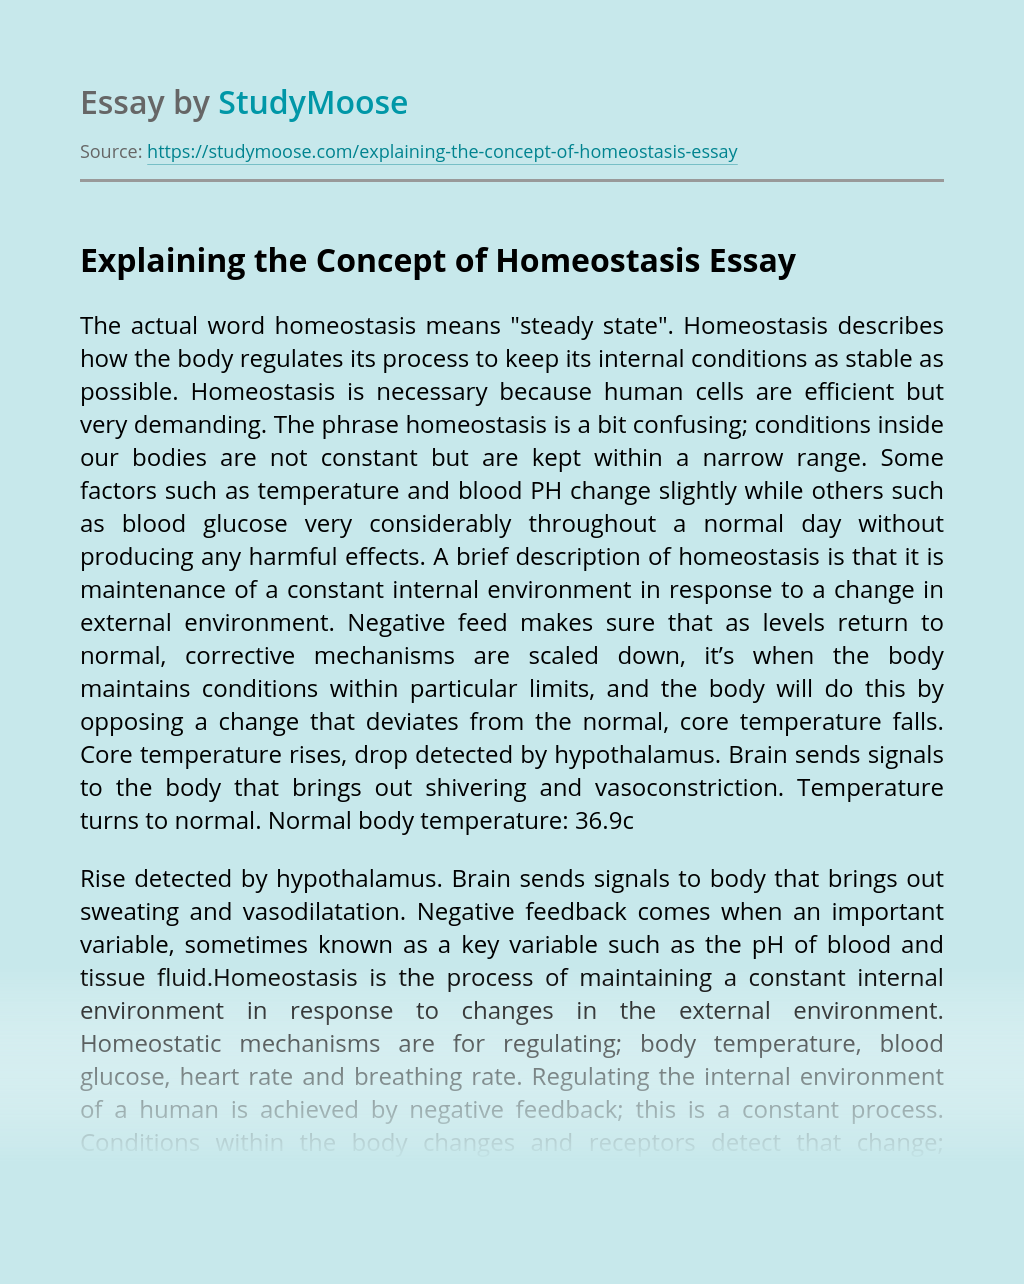 Explaining the Concept of Homeostasis